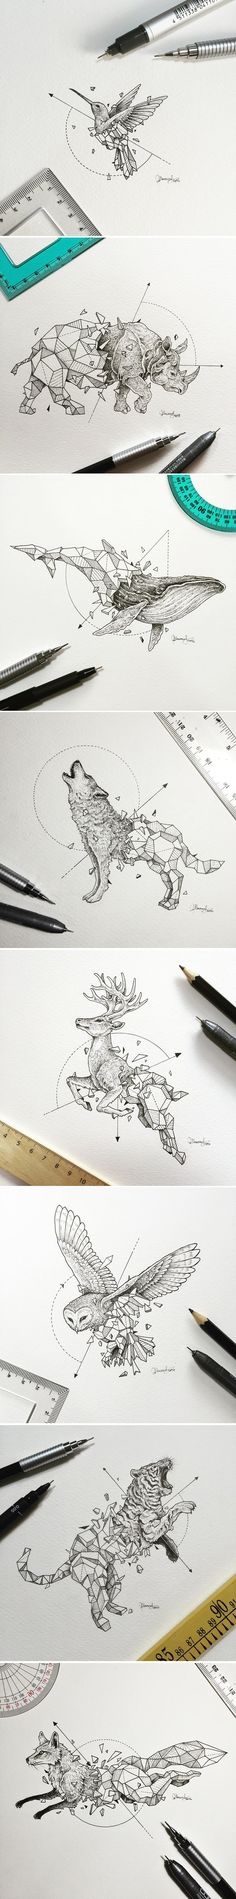 Manila-based illustrator Kerby Rosanes known as Sketchy Stories has created a…